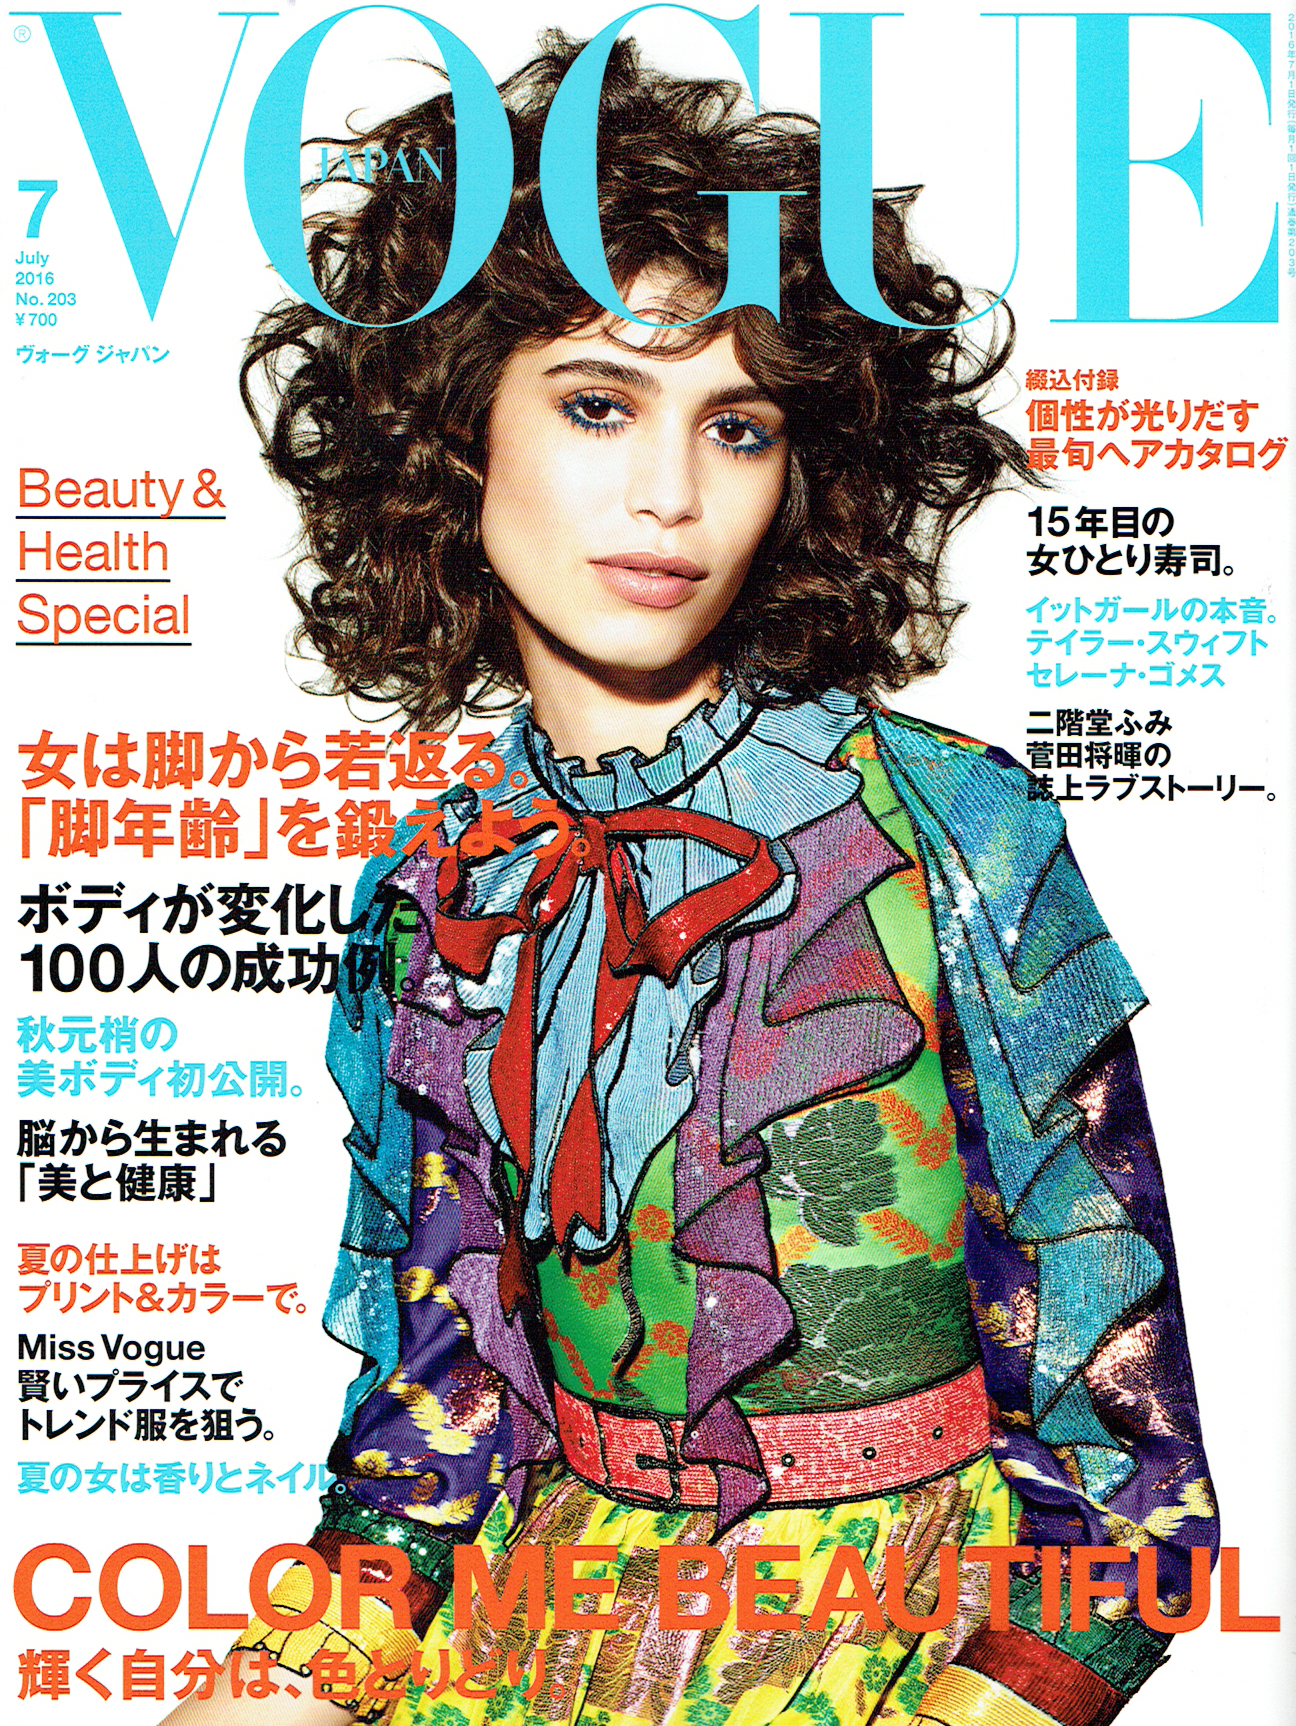 Vogue,  July 2016, Color Me Beautiful issue